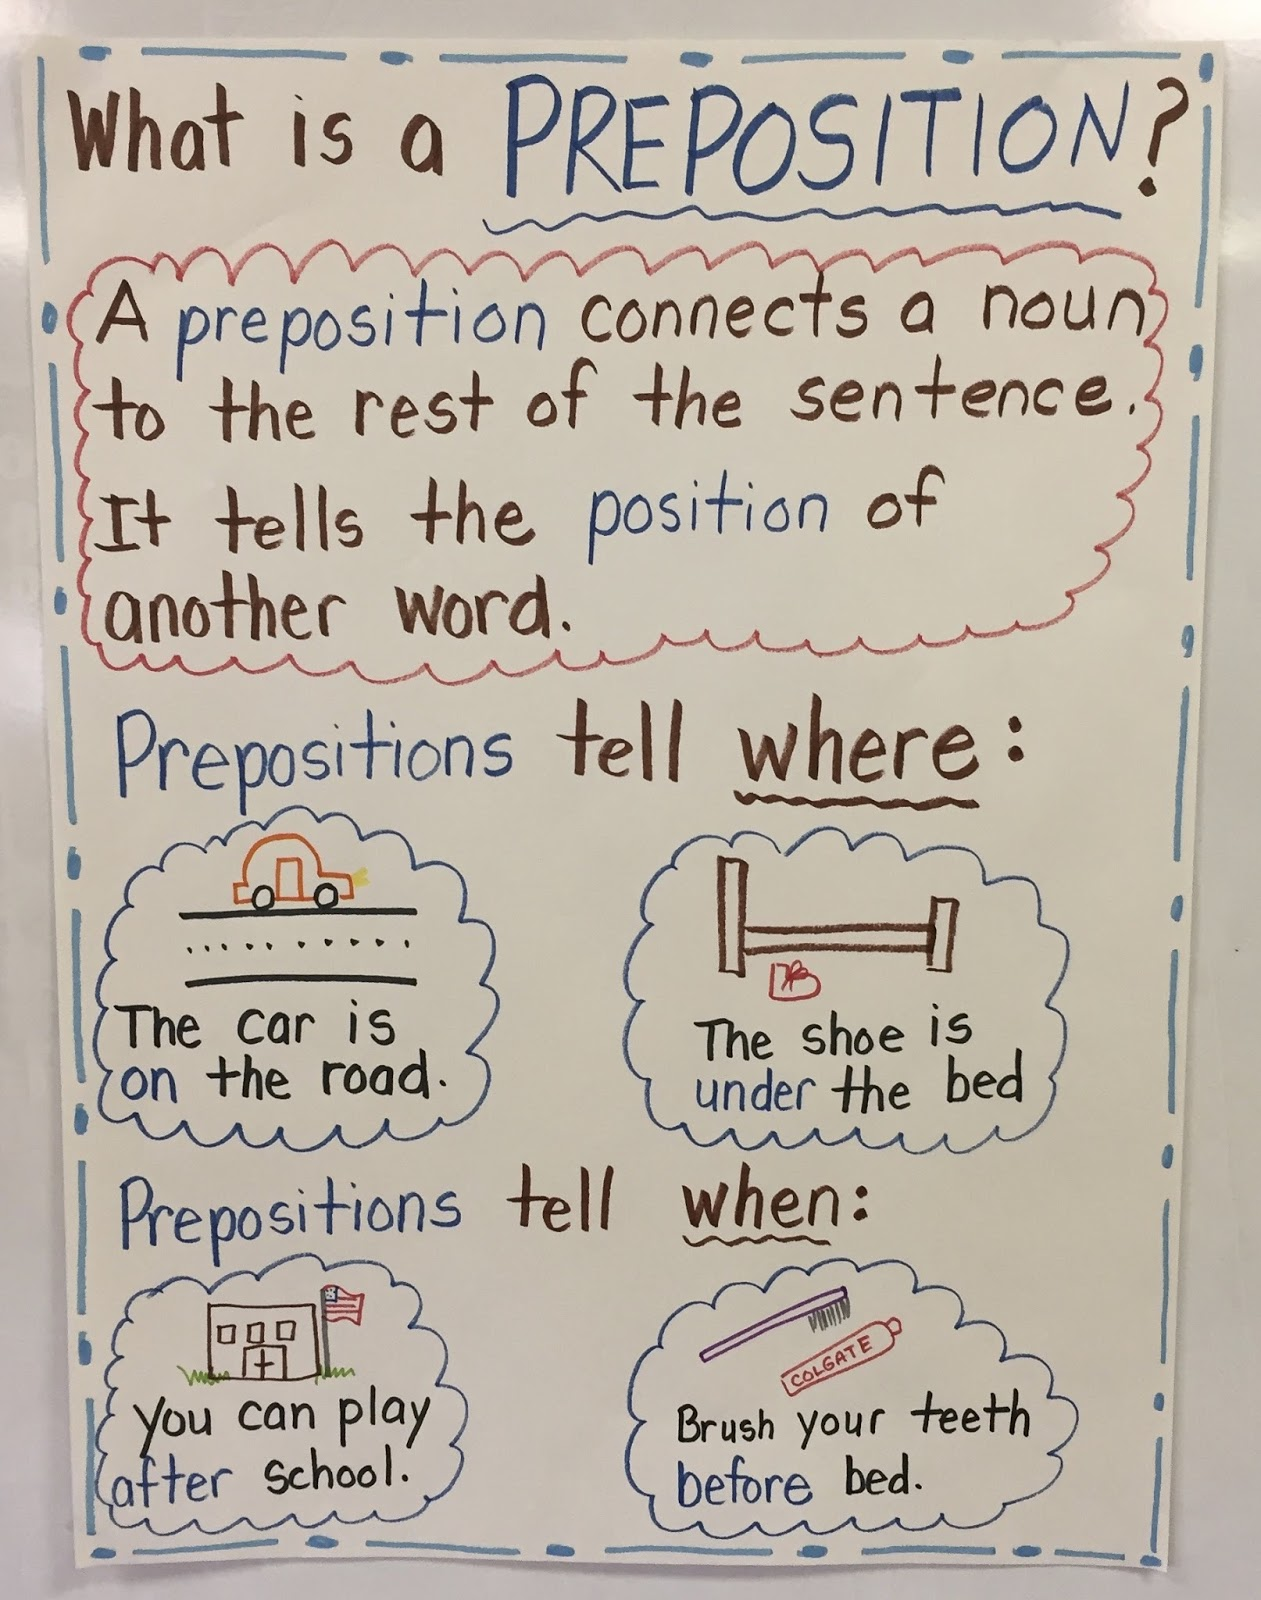 hight resolution of Prepositional Phrases Worksheet Middle School   Printable Worksheets and  Activities for Teachers